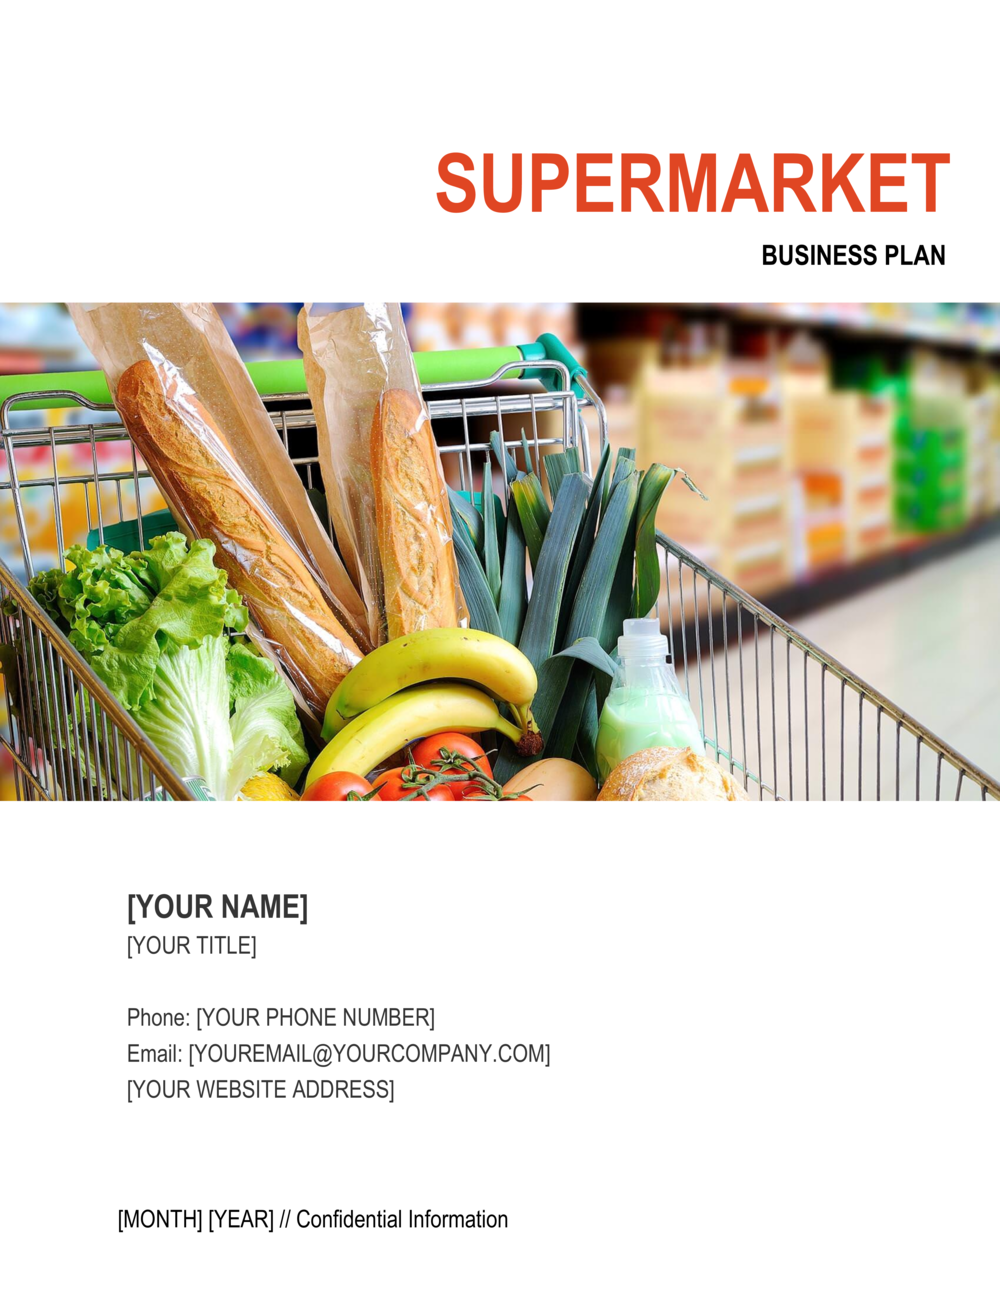 Business-in-a-Box's Supermarket Business Plan Template